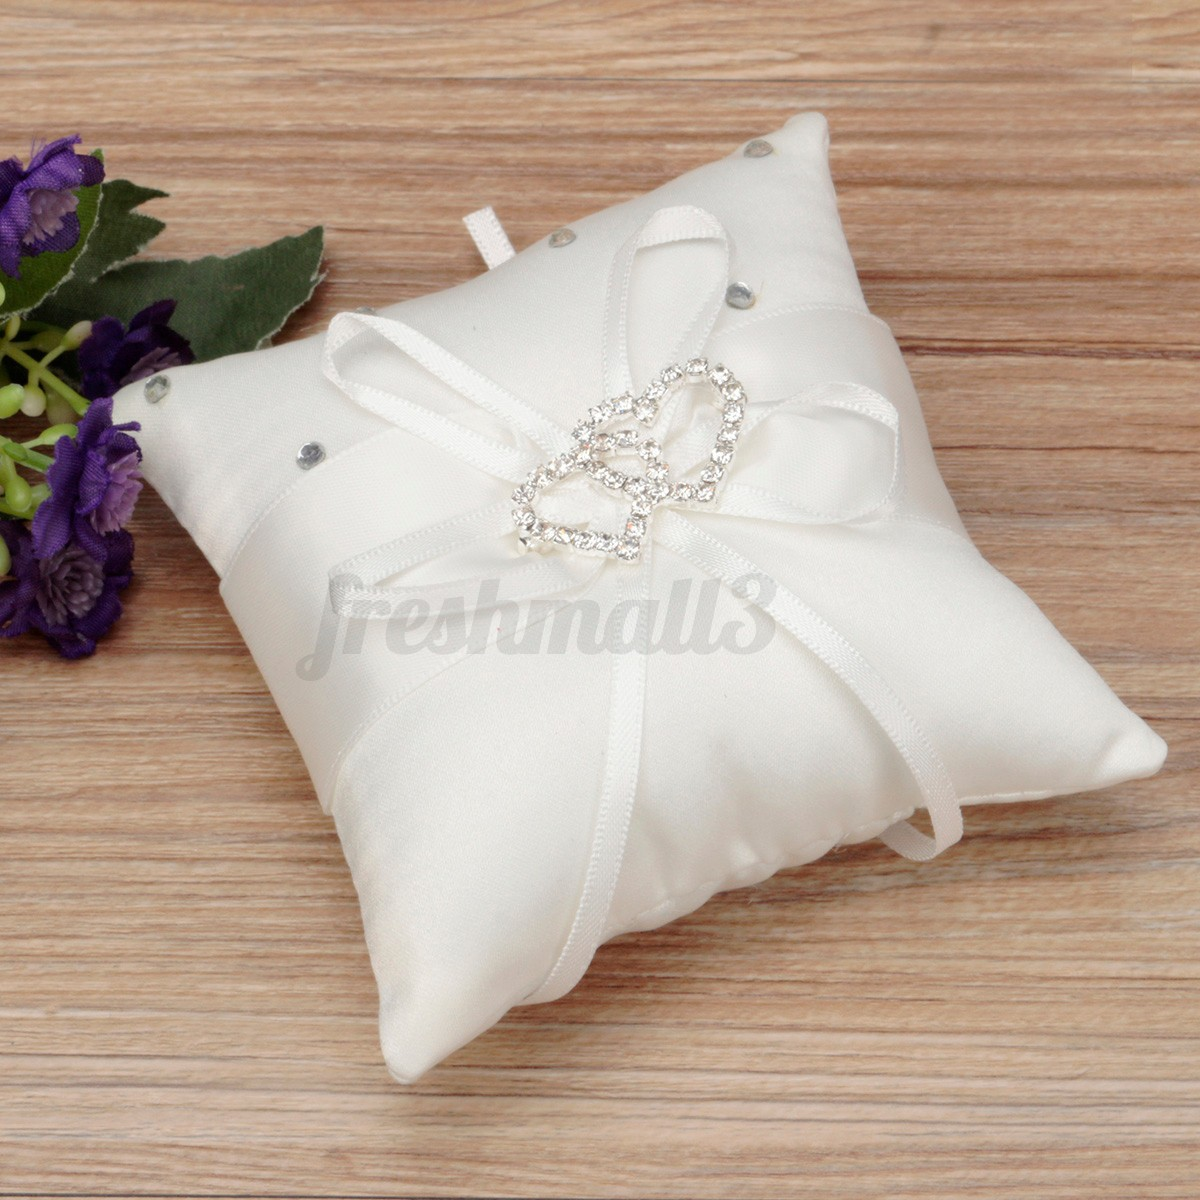 wedding silk pillow ribbon vintage decor ivory holder bridal beads jasmine ring flower bearers embroideried satin style gifts embroidered for